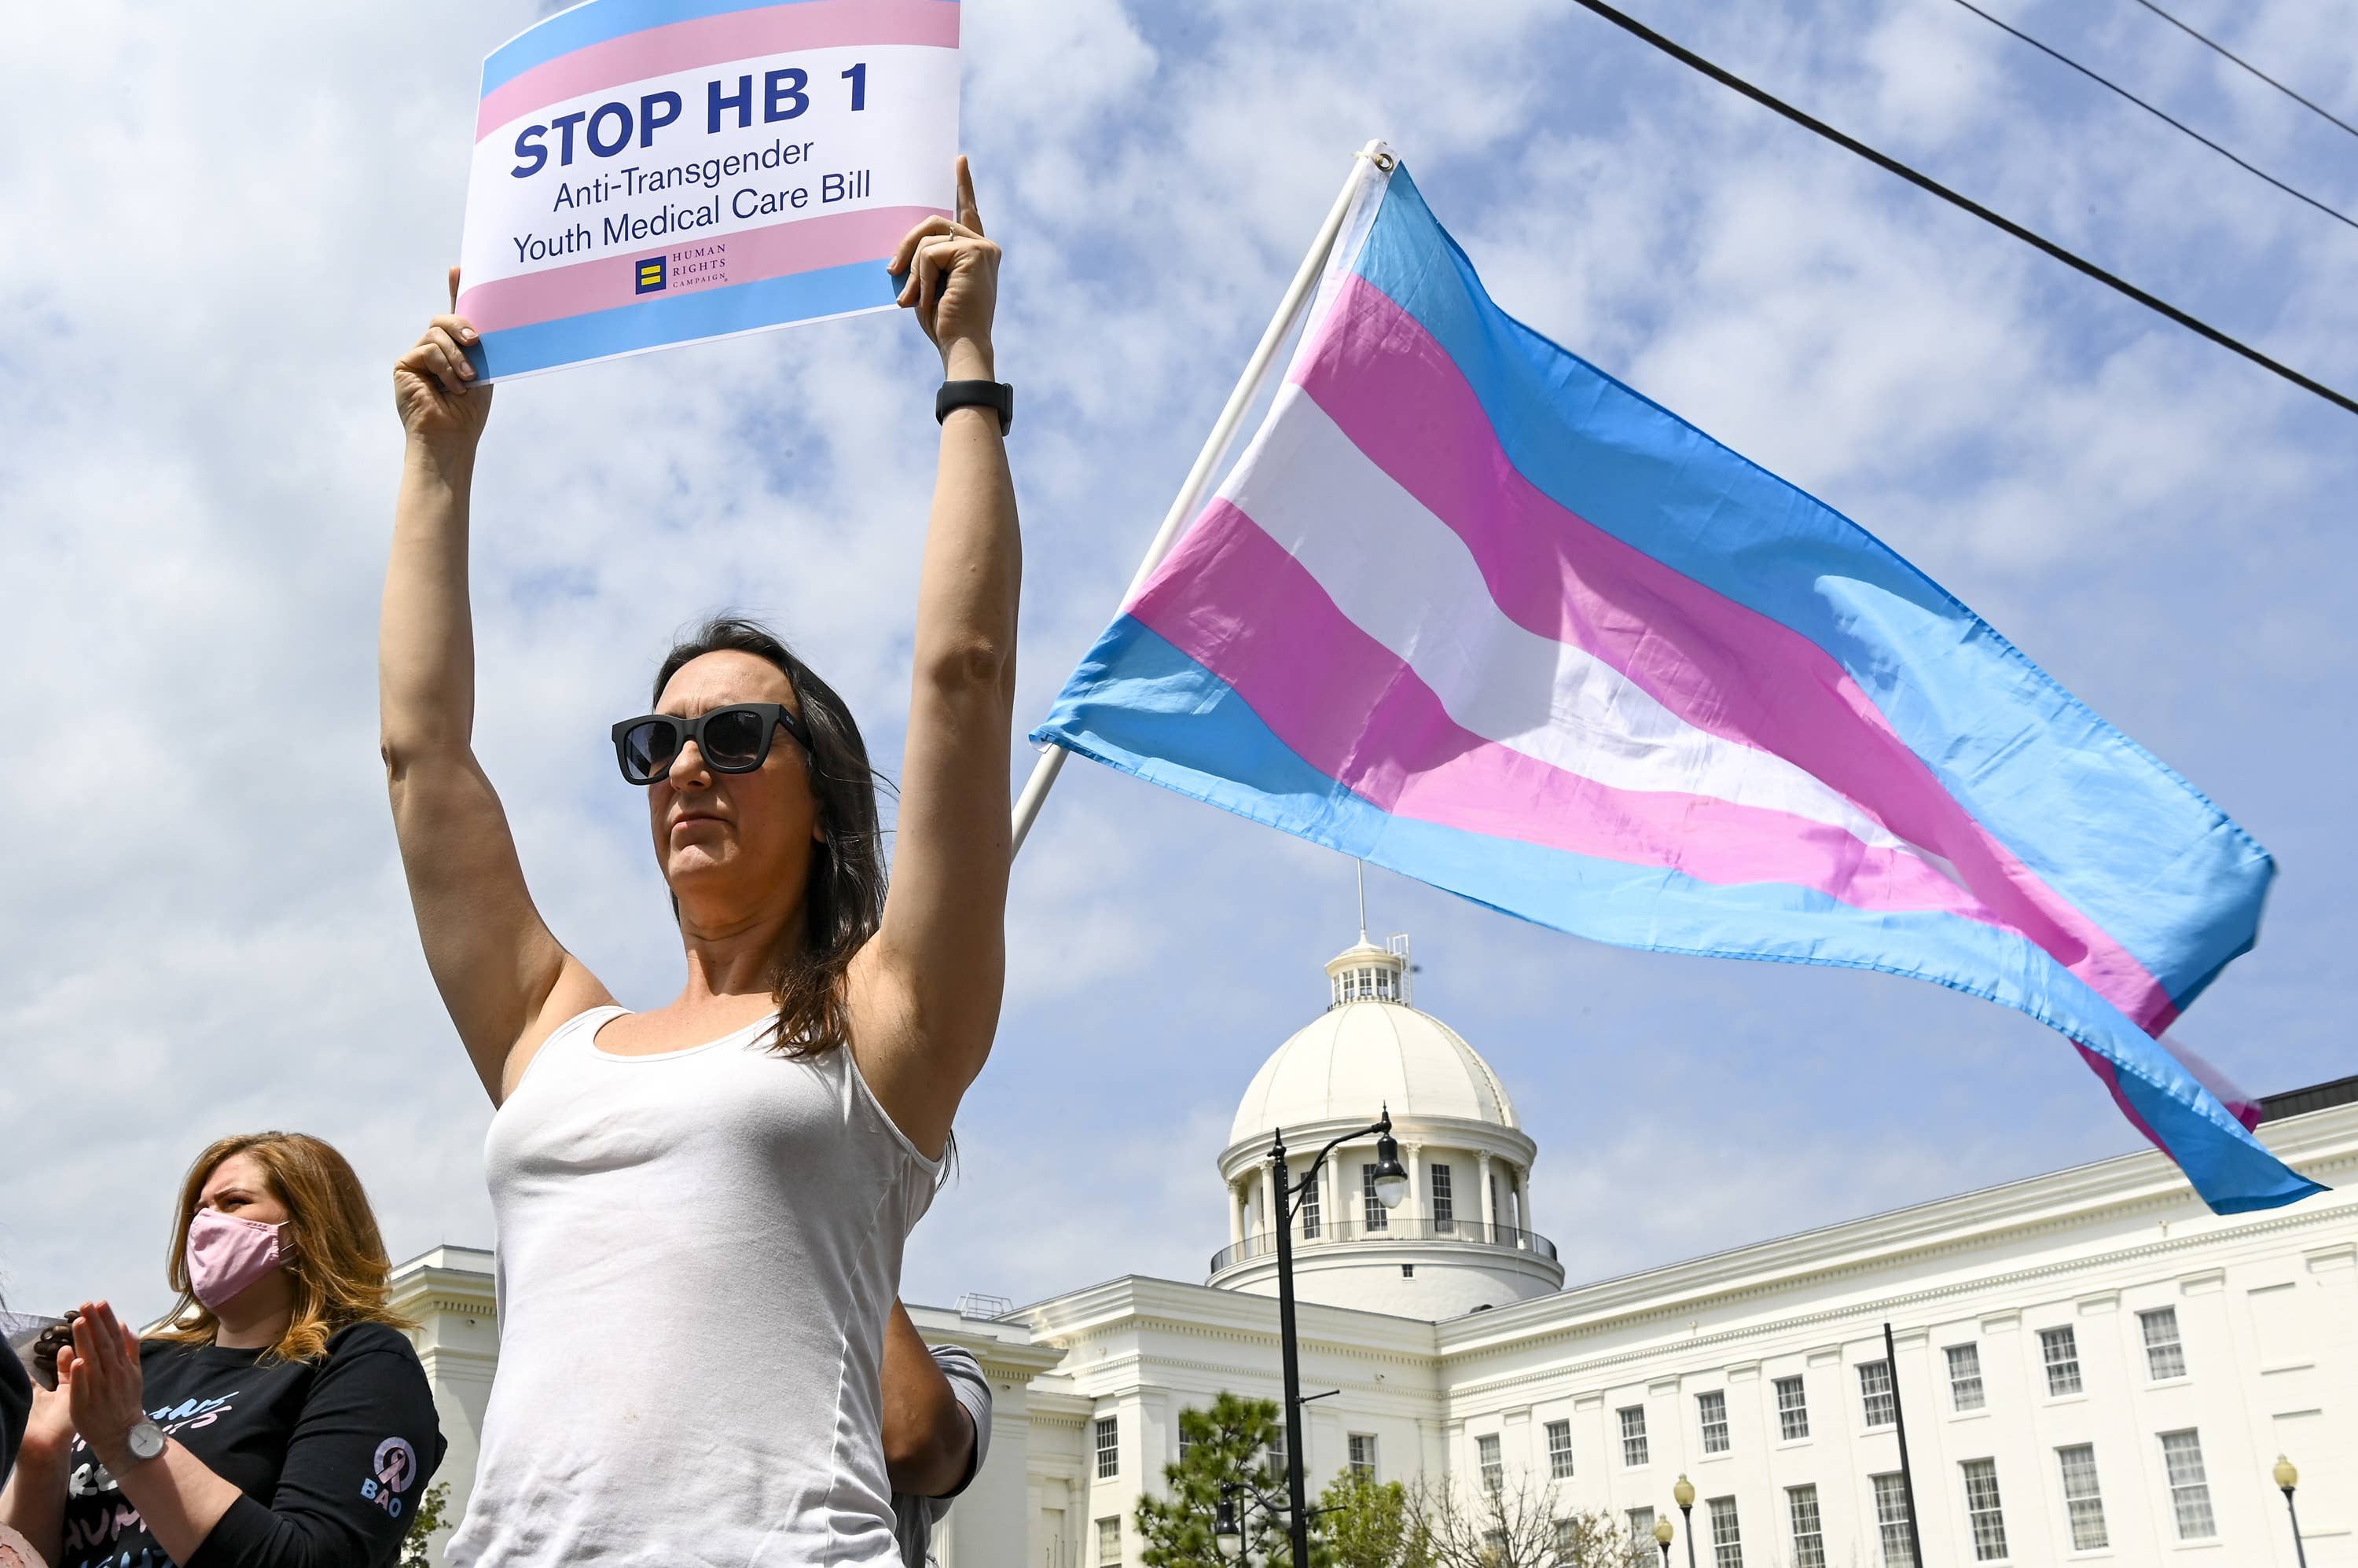 The Science Behind Those Anti-Trans Healthcare Bills Is Bullshit, According To Experts